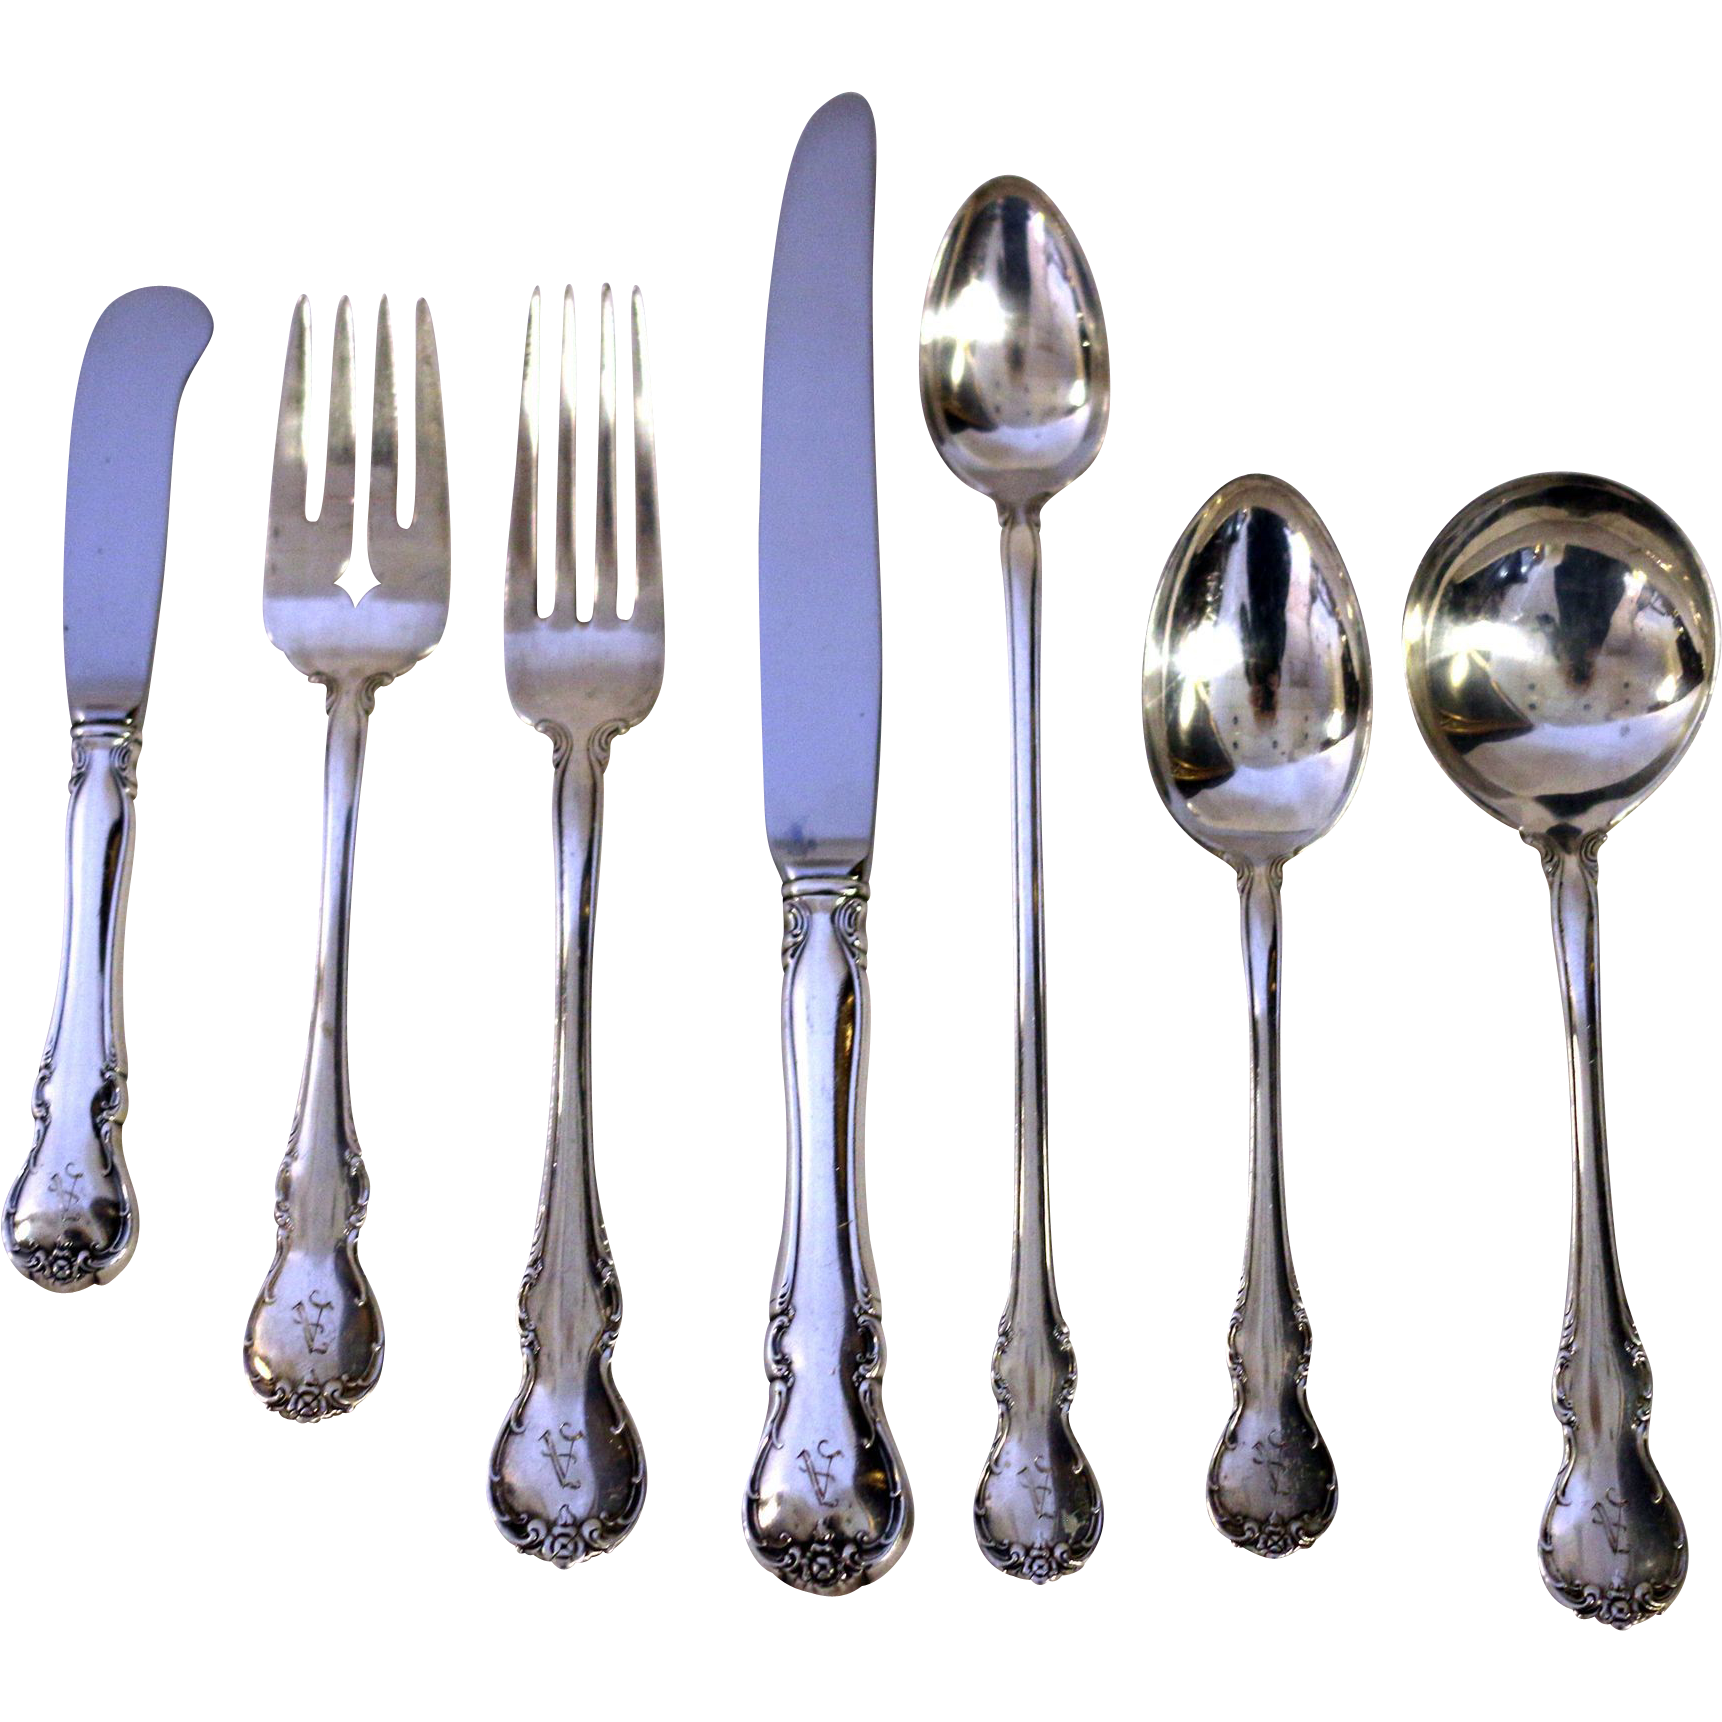 French provential by towle flatware set from savannahgalleries on ruby lane - Unusual flatware sets ...